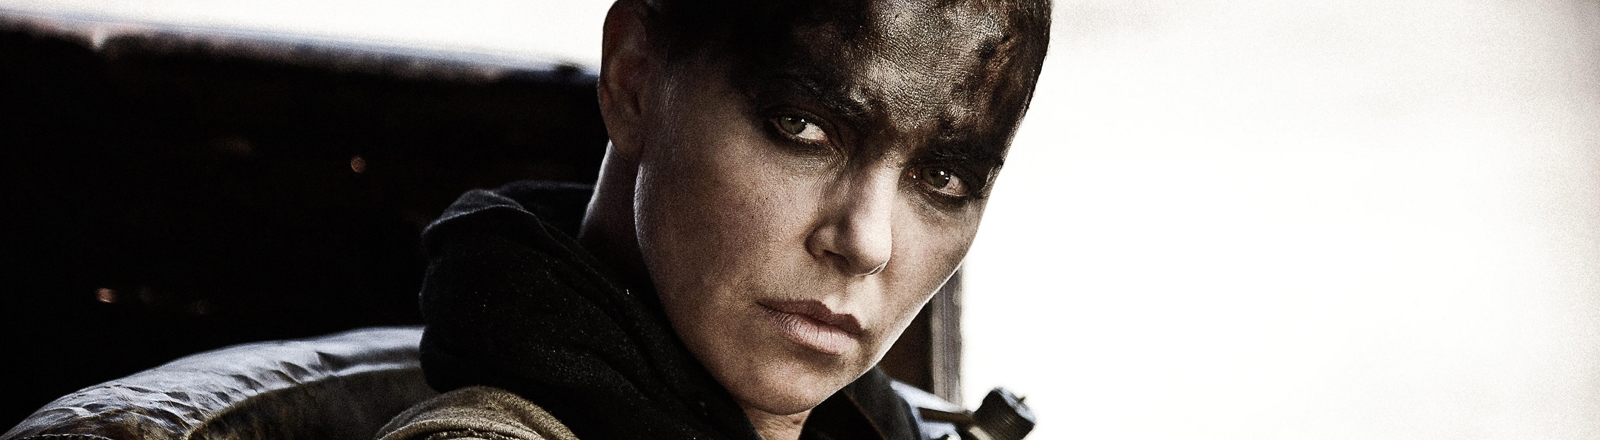 "Charlize Theron in einer Szene in ""Mad Max - Fury Road"""